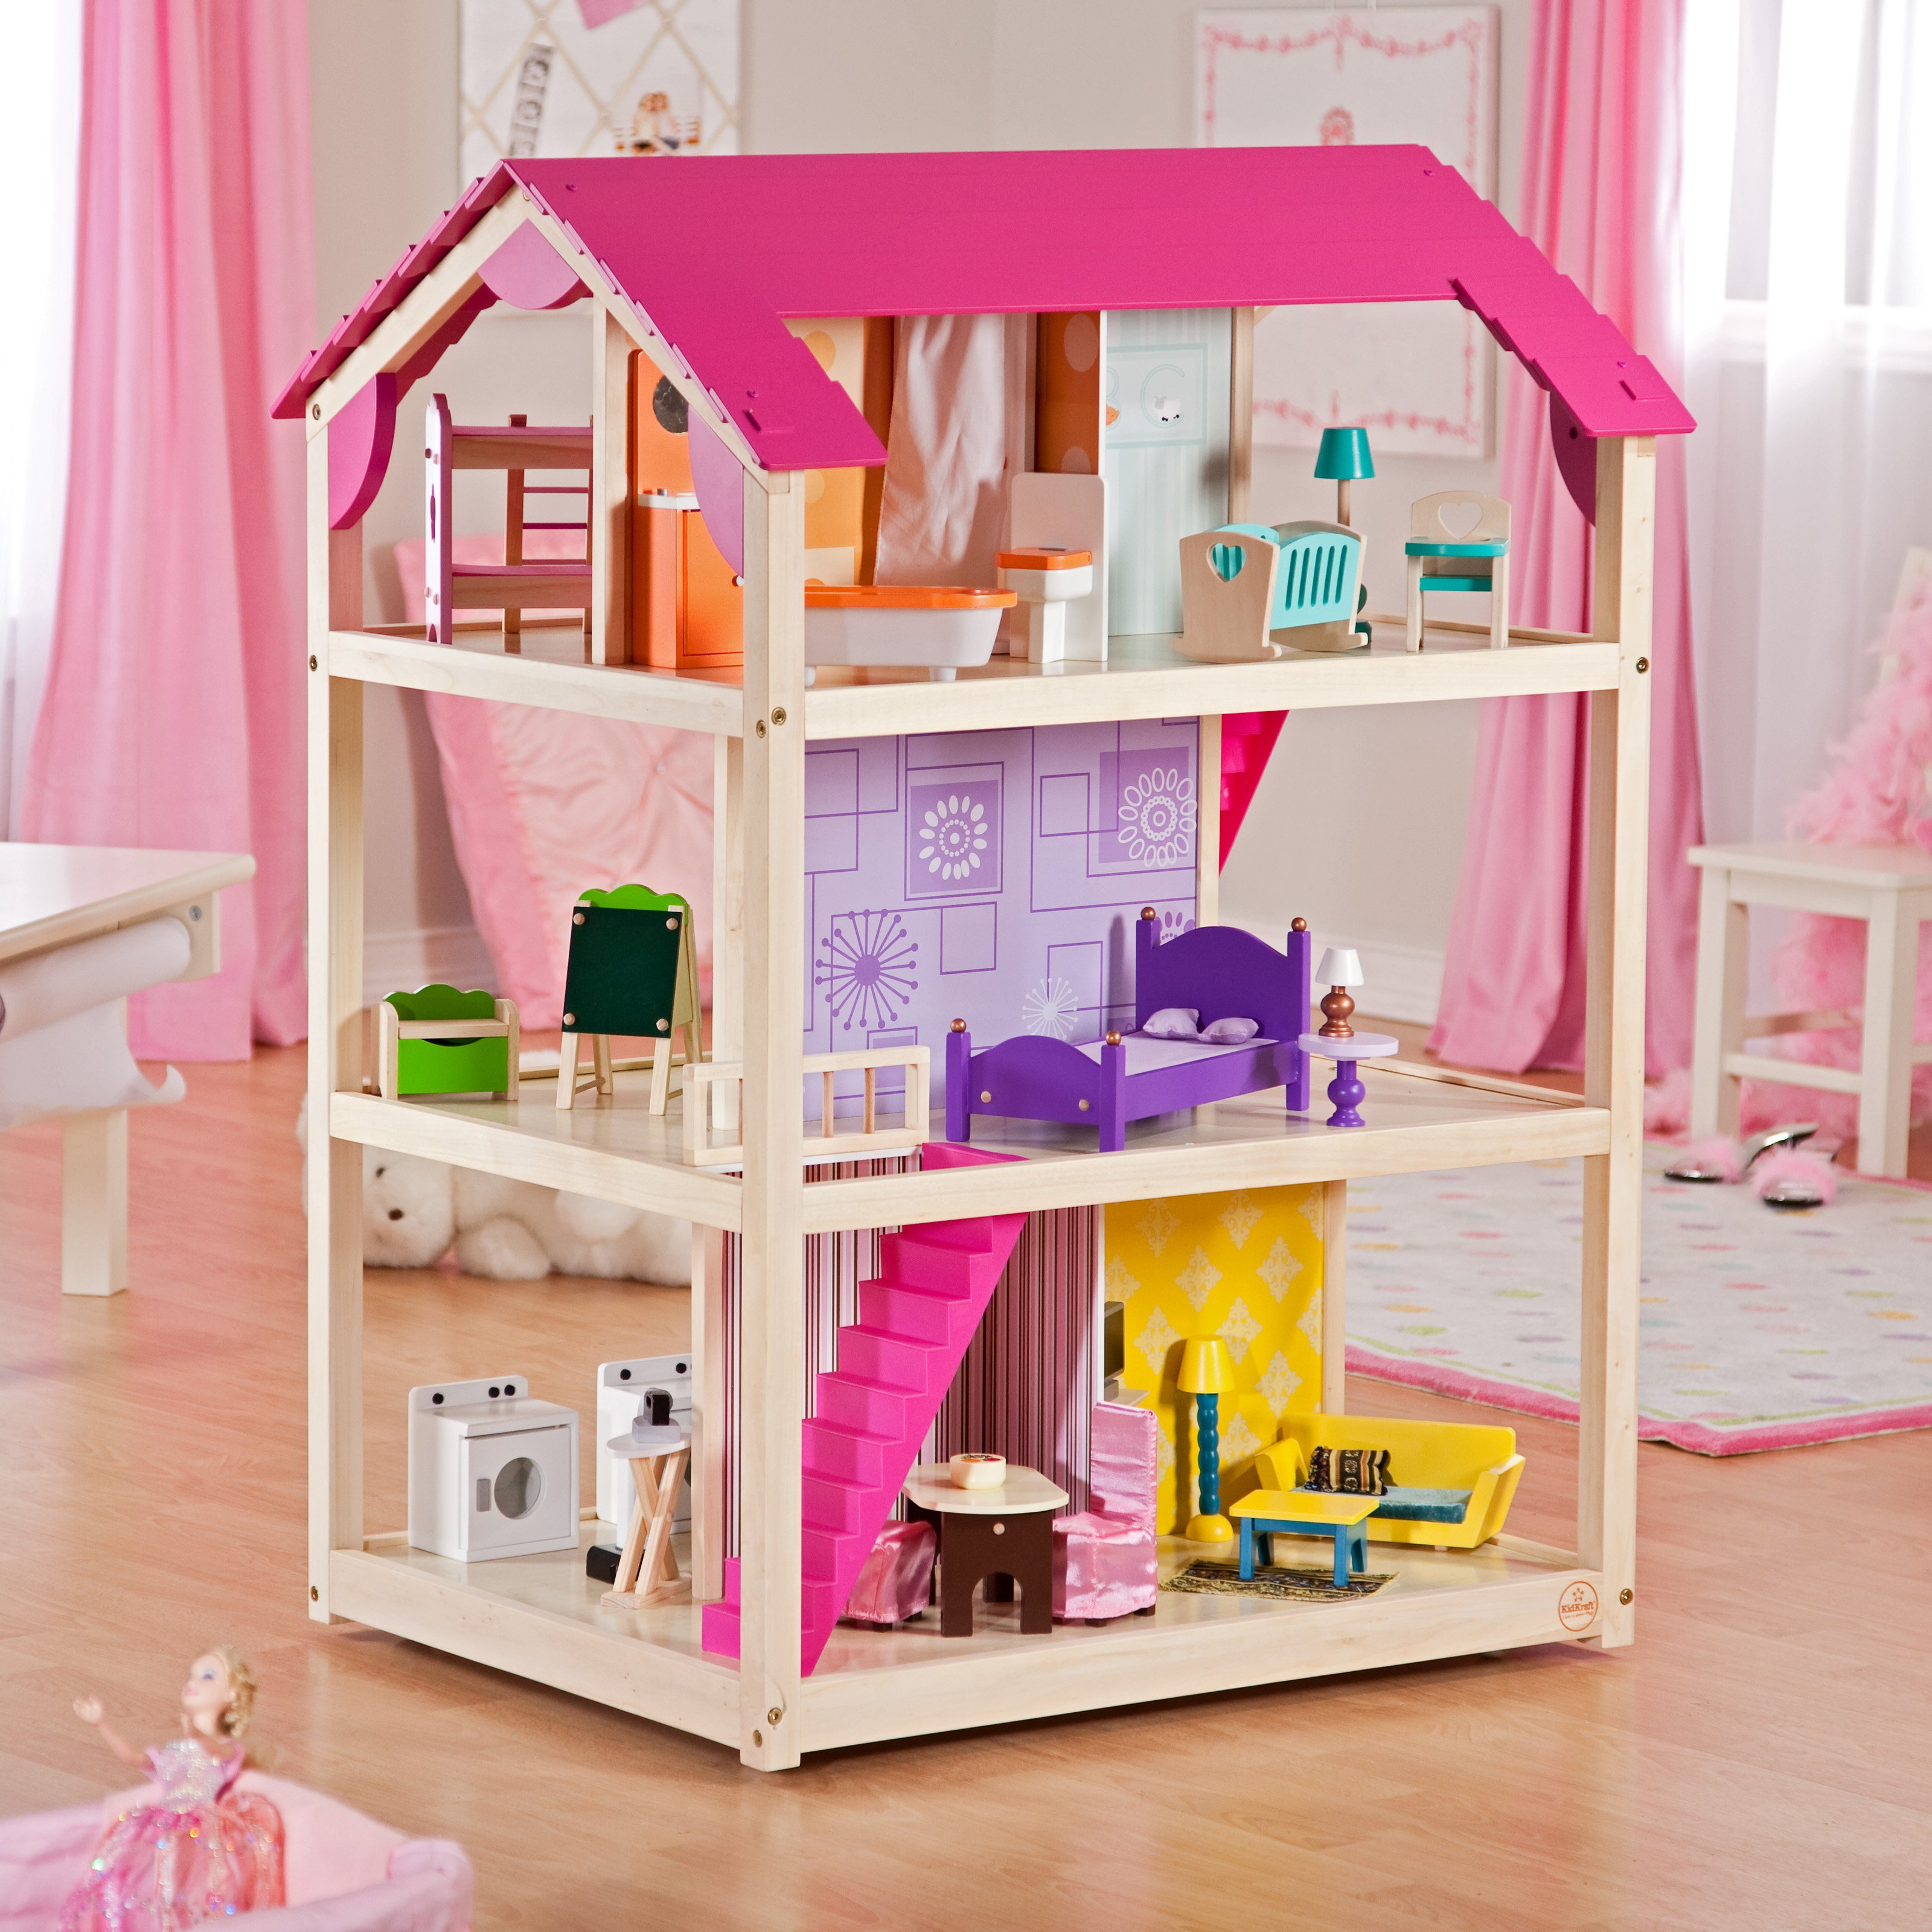 Wonderful Kidkraft Dollhouse Made Of Wood In Cream And Pink Theme On Wooden Floor Which Matched With Beige Wall With Pink Curtain For Nursery Decor Ideas